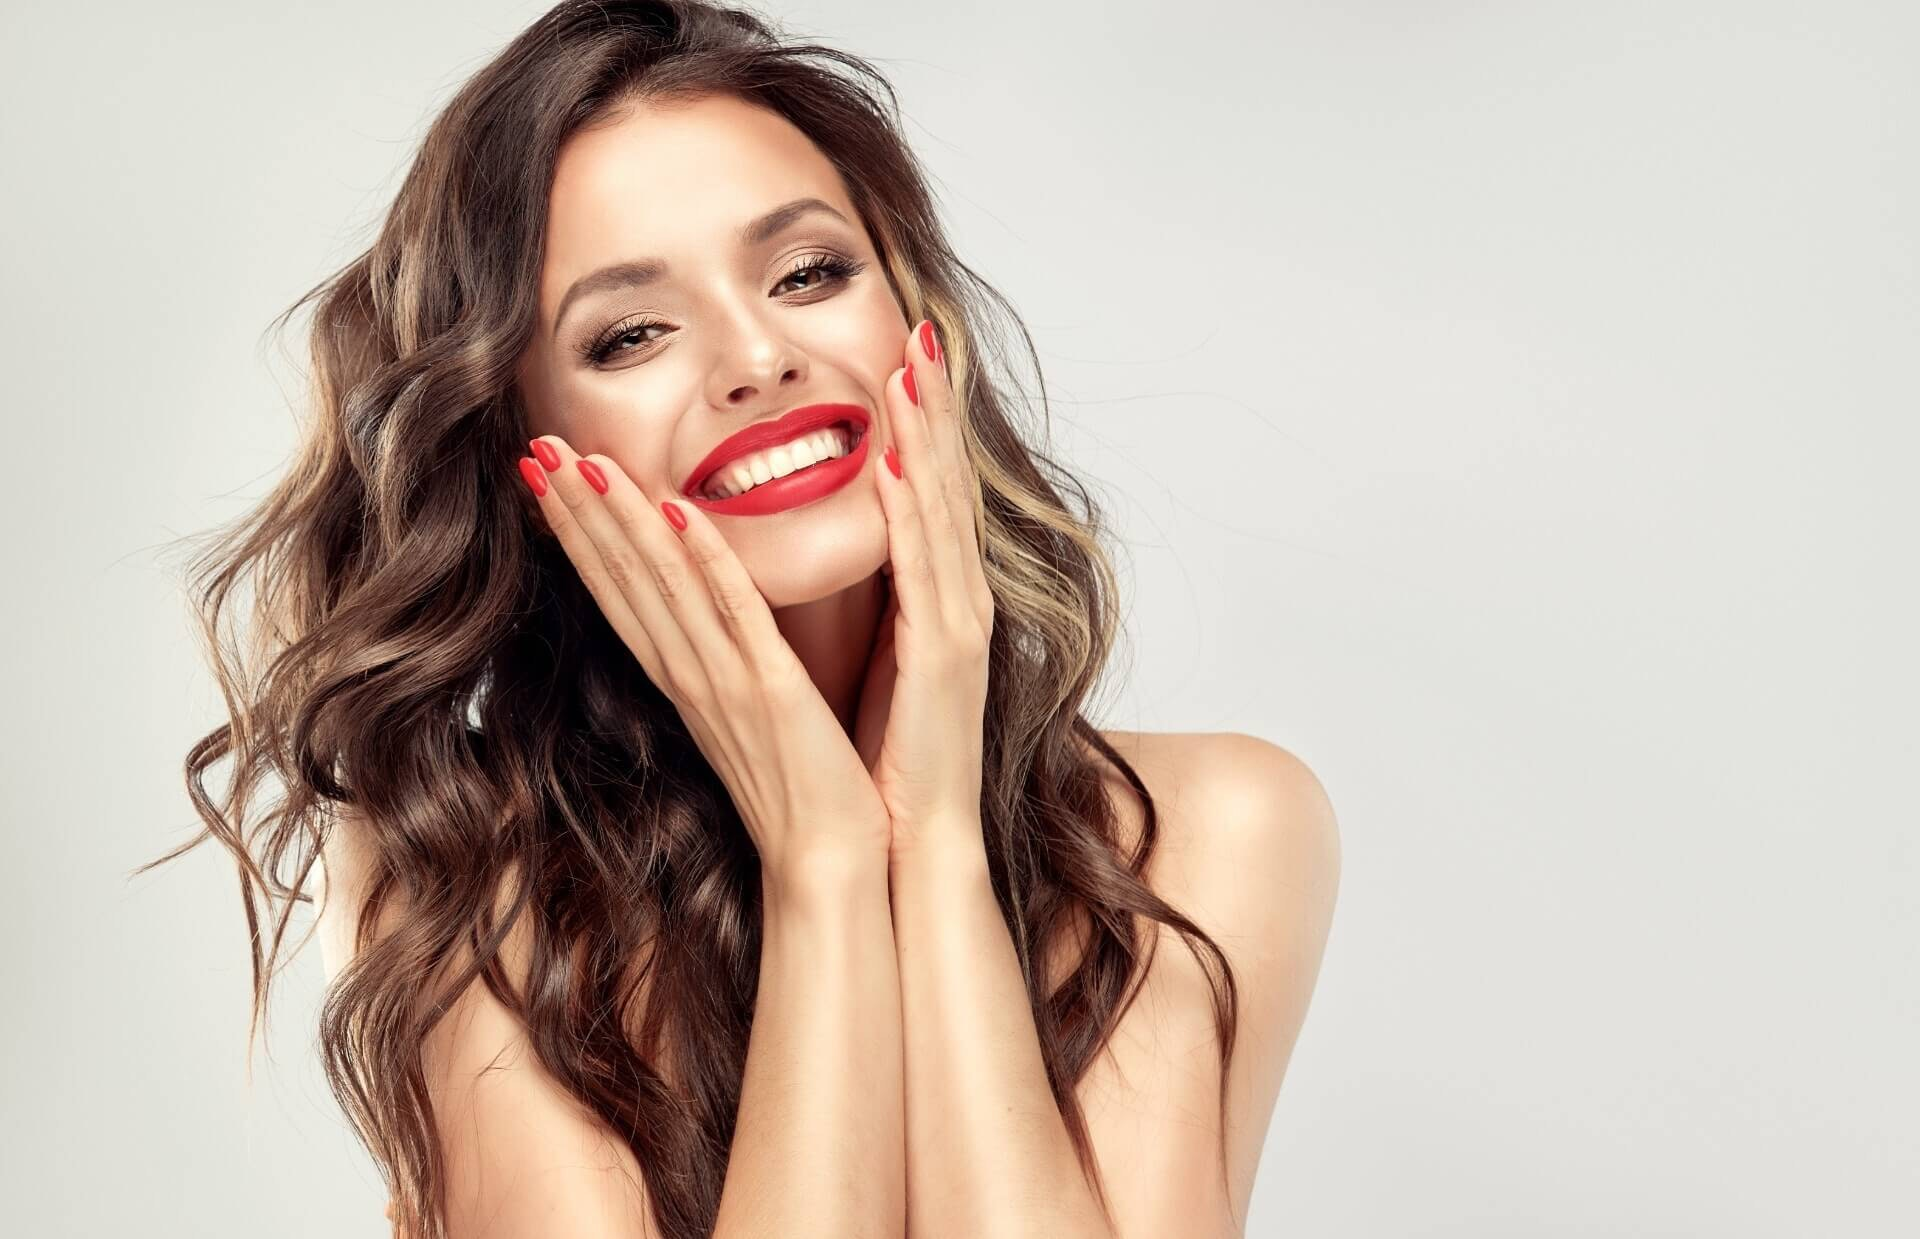 Woman smiling and touching her face